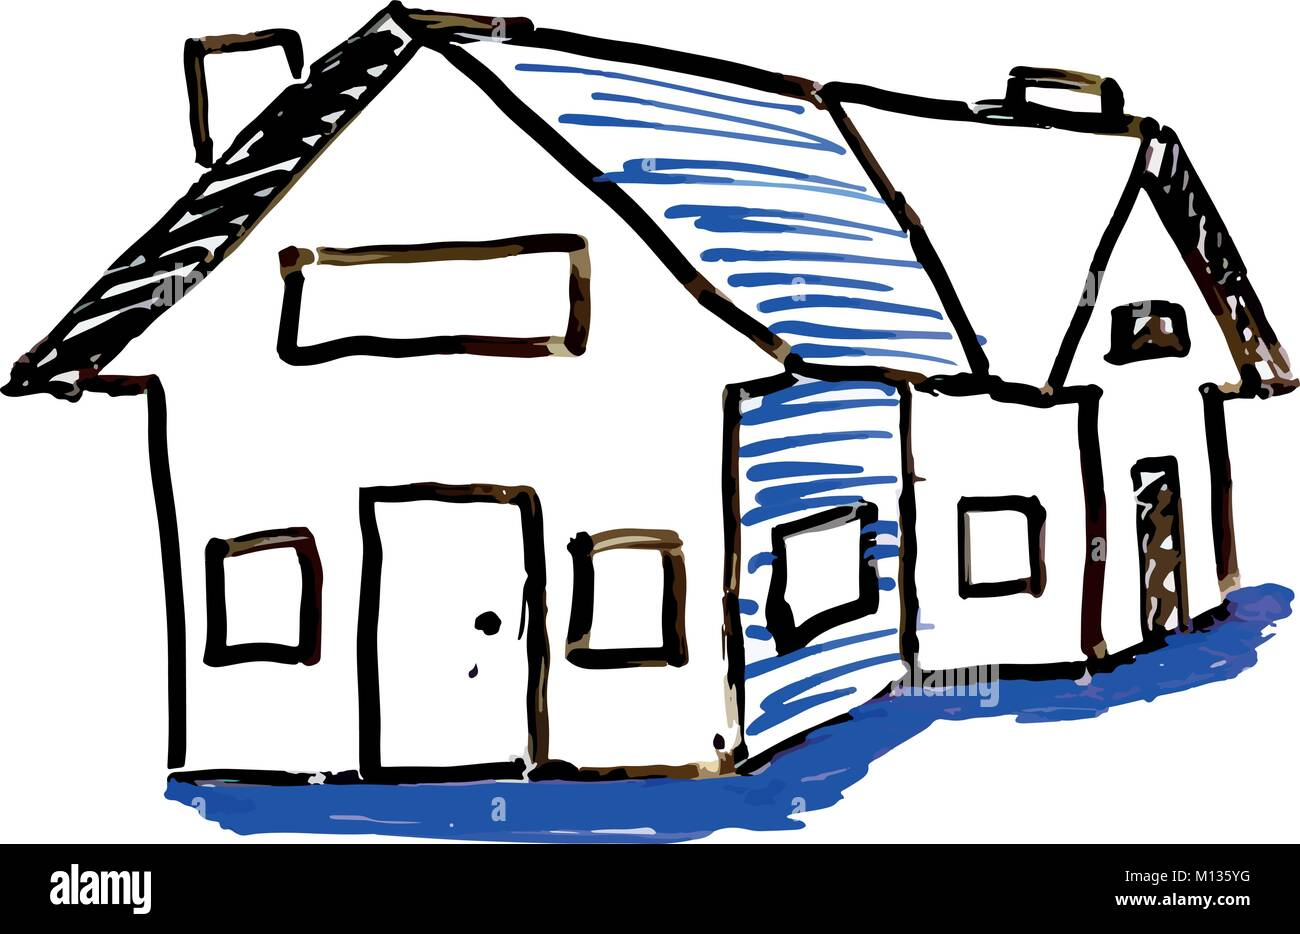 House Shading White Board Illustration - Stock Image